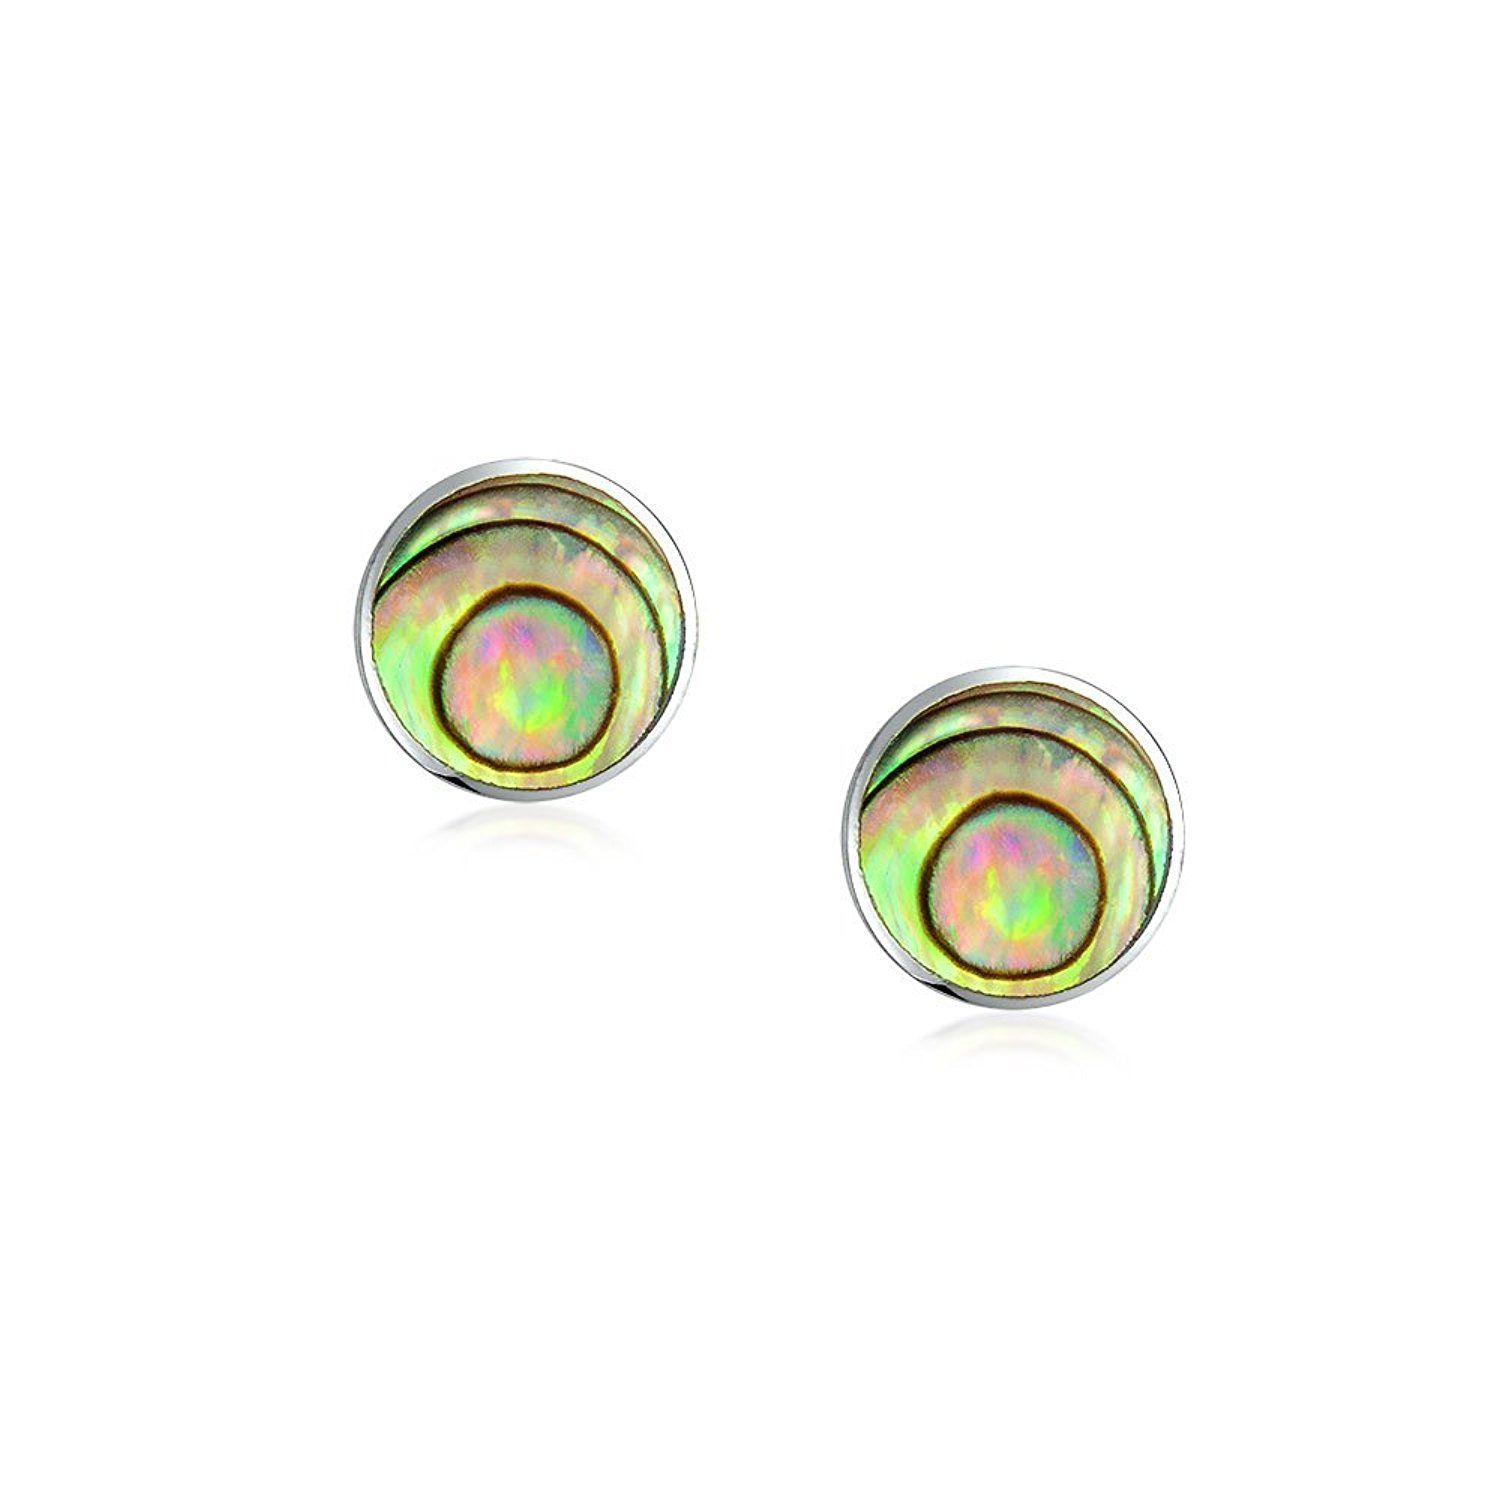 gold yellow tragus earring stud abalone etsy via solid pin nose ring paua handcrafted shell cartilage